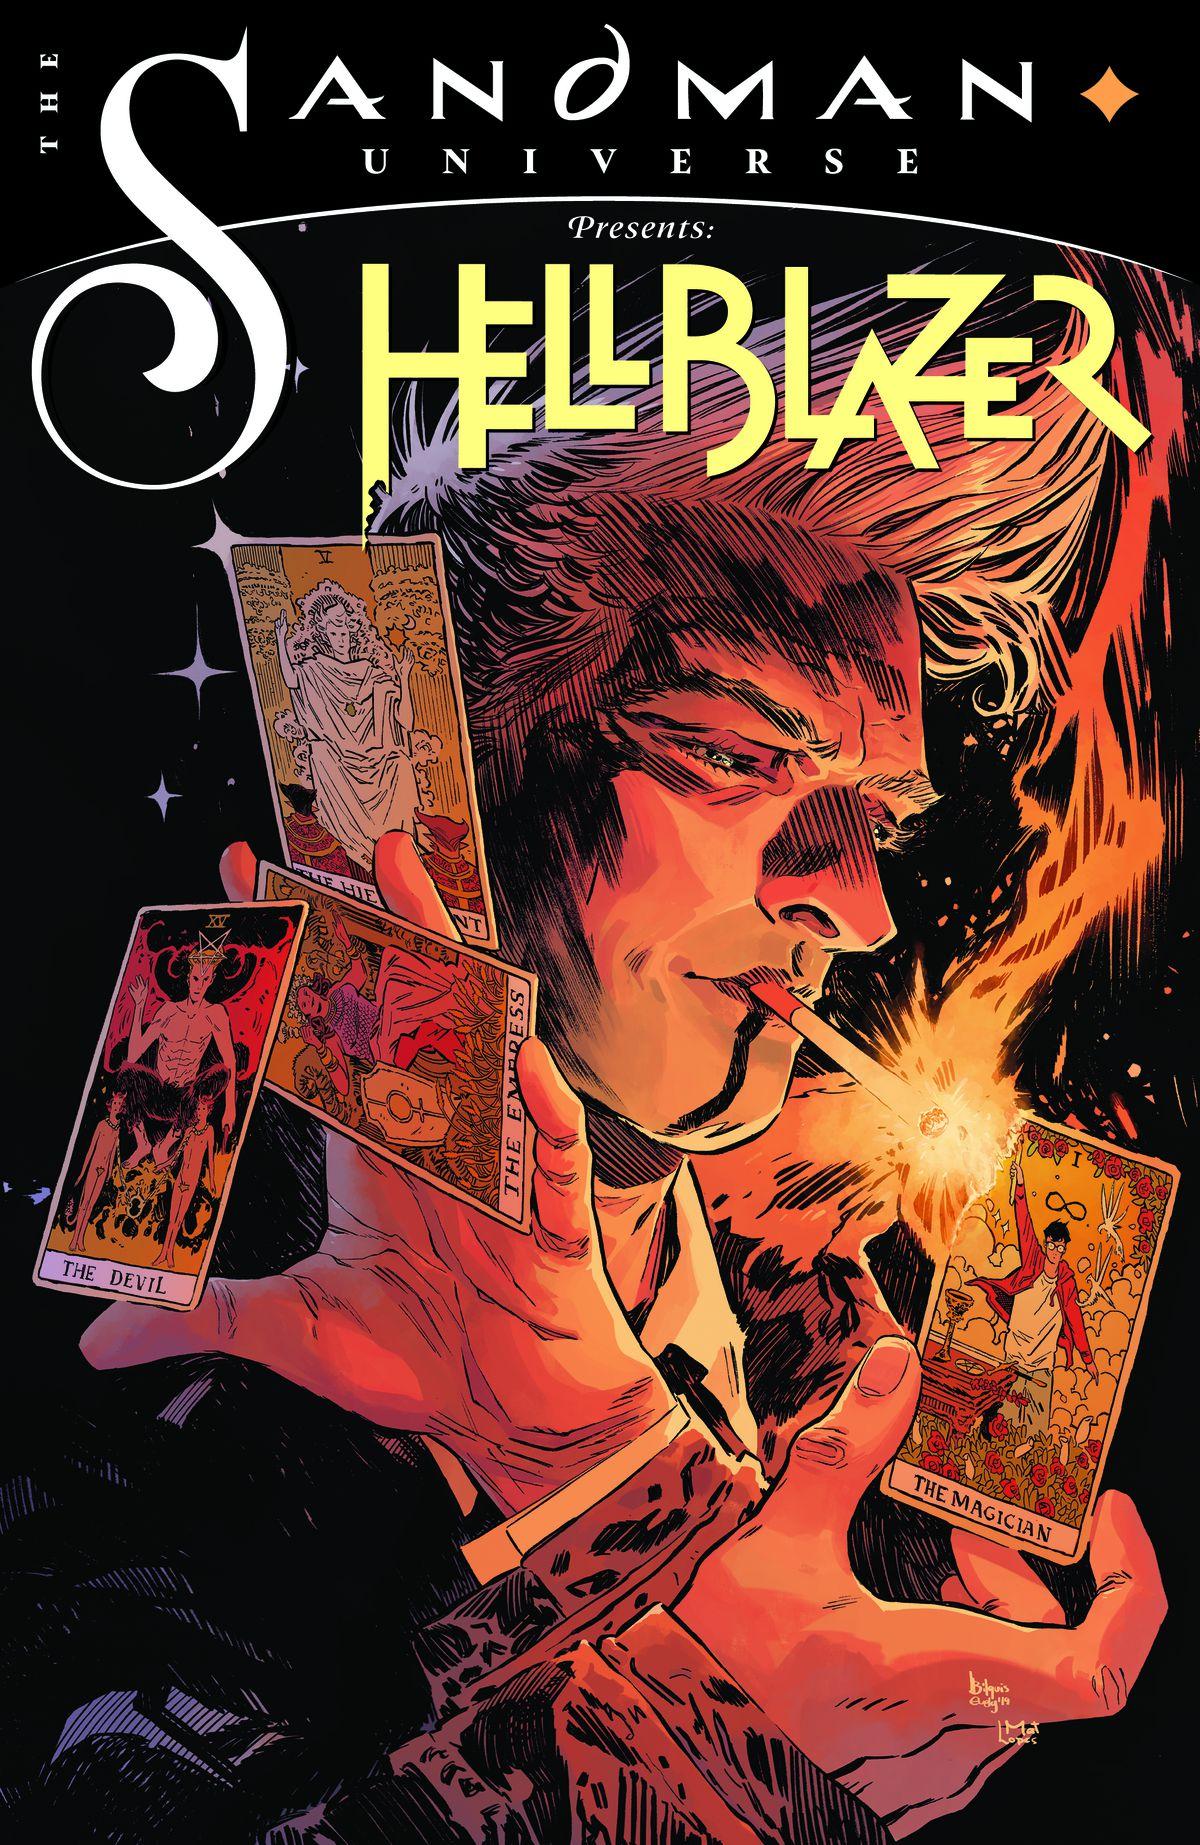 John Constantine on the cover of The Sandman Universe Presents Hellblazer #1, DC Comics (2019).